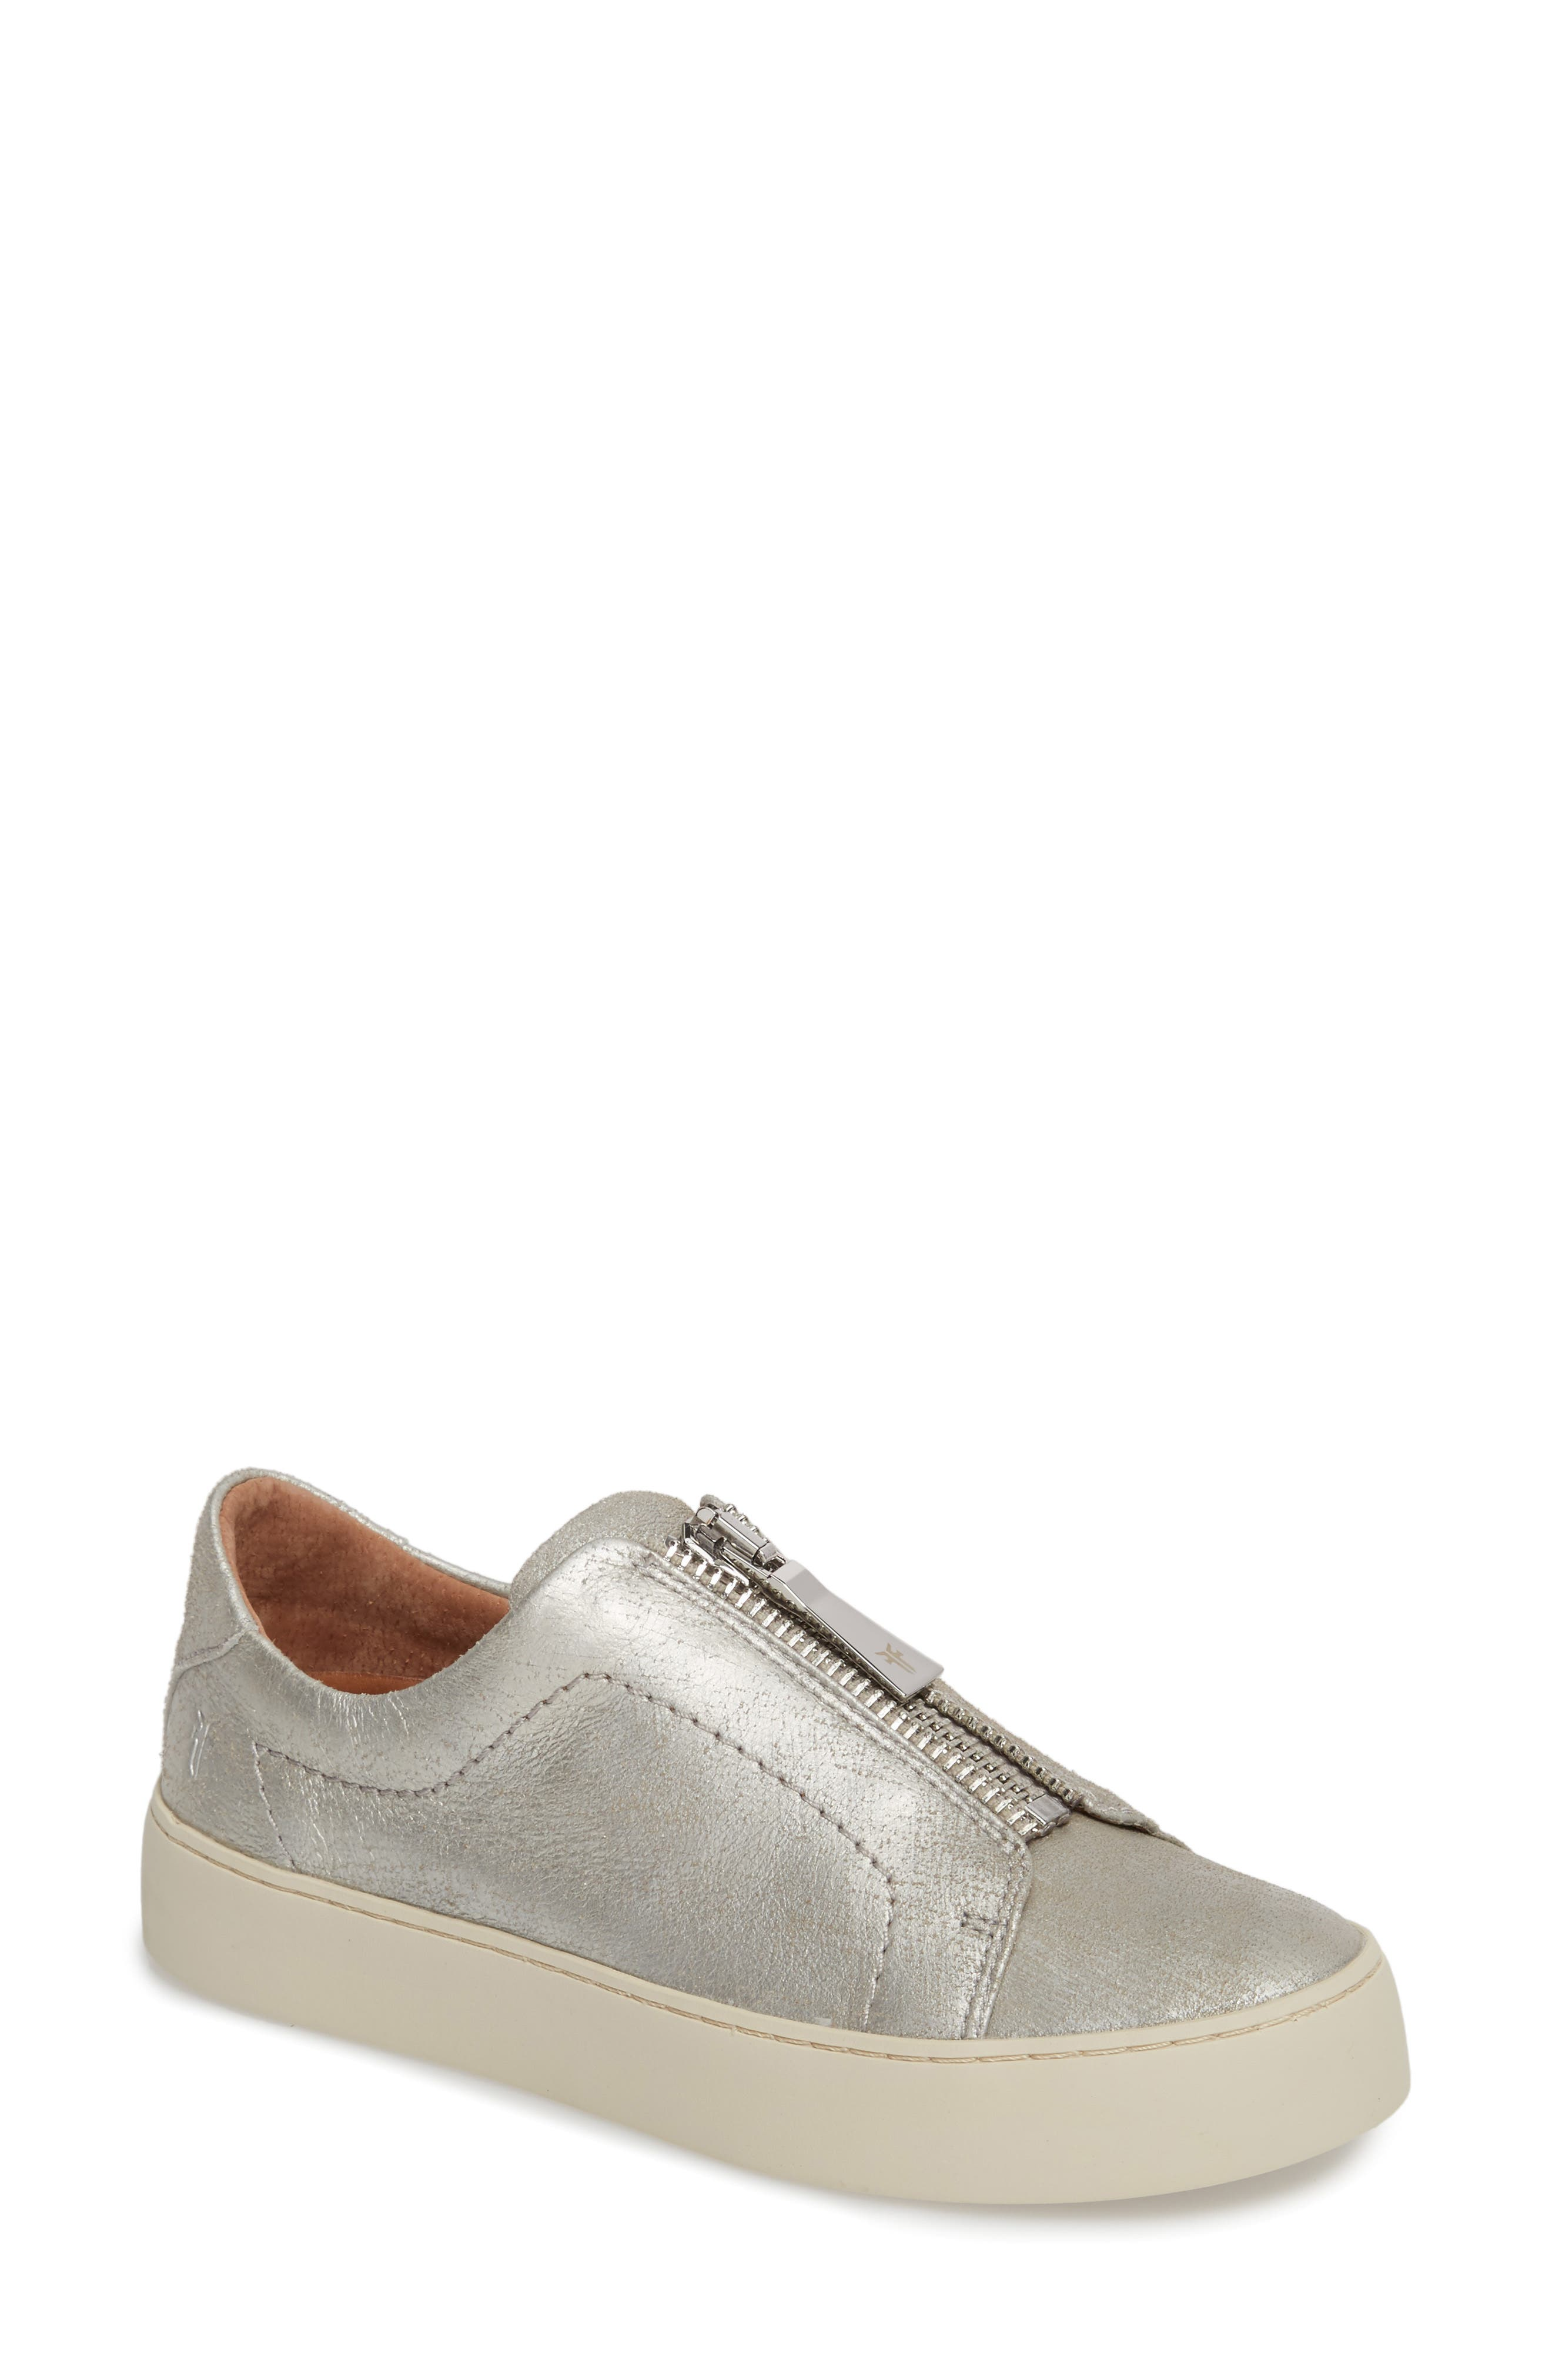 Lena Zip Sneaker,                         Main,                         color, Silver Leather